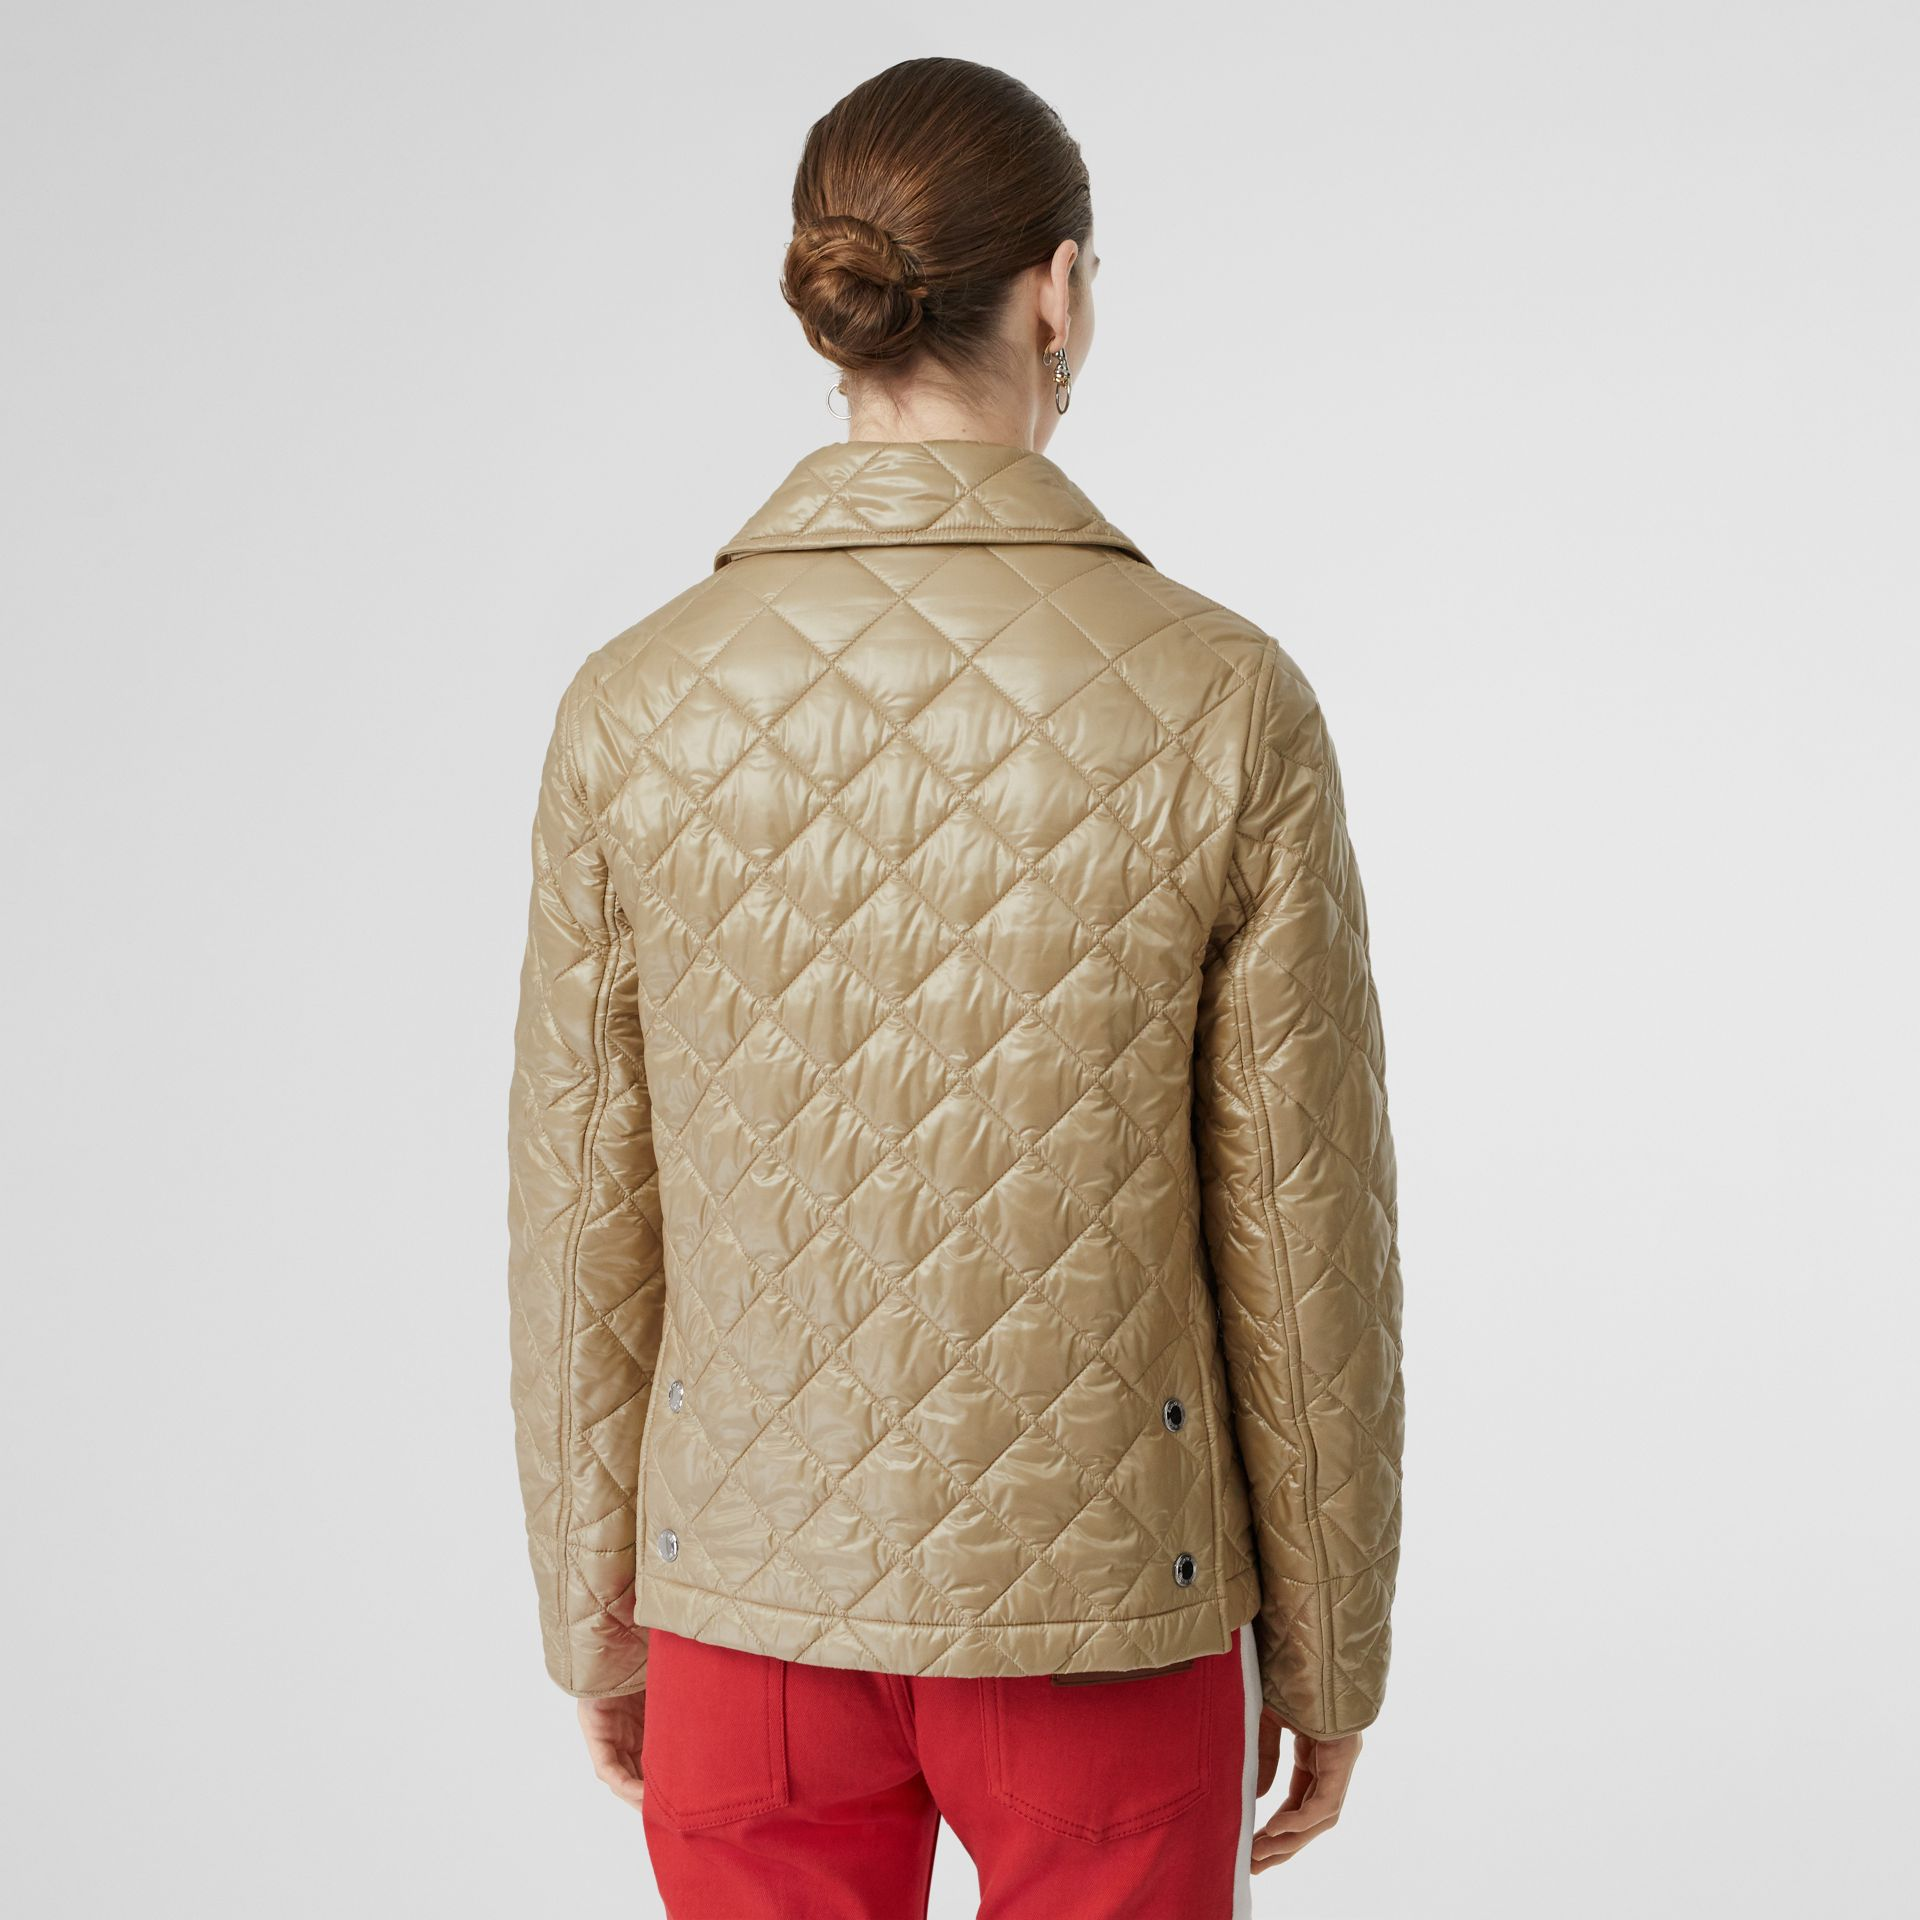 Monogram Motif Diamond Quilted Jacket in Honey - Women | Burberry - gallery image 2